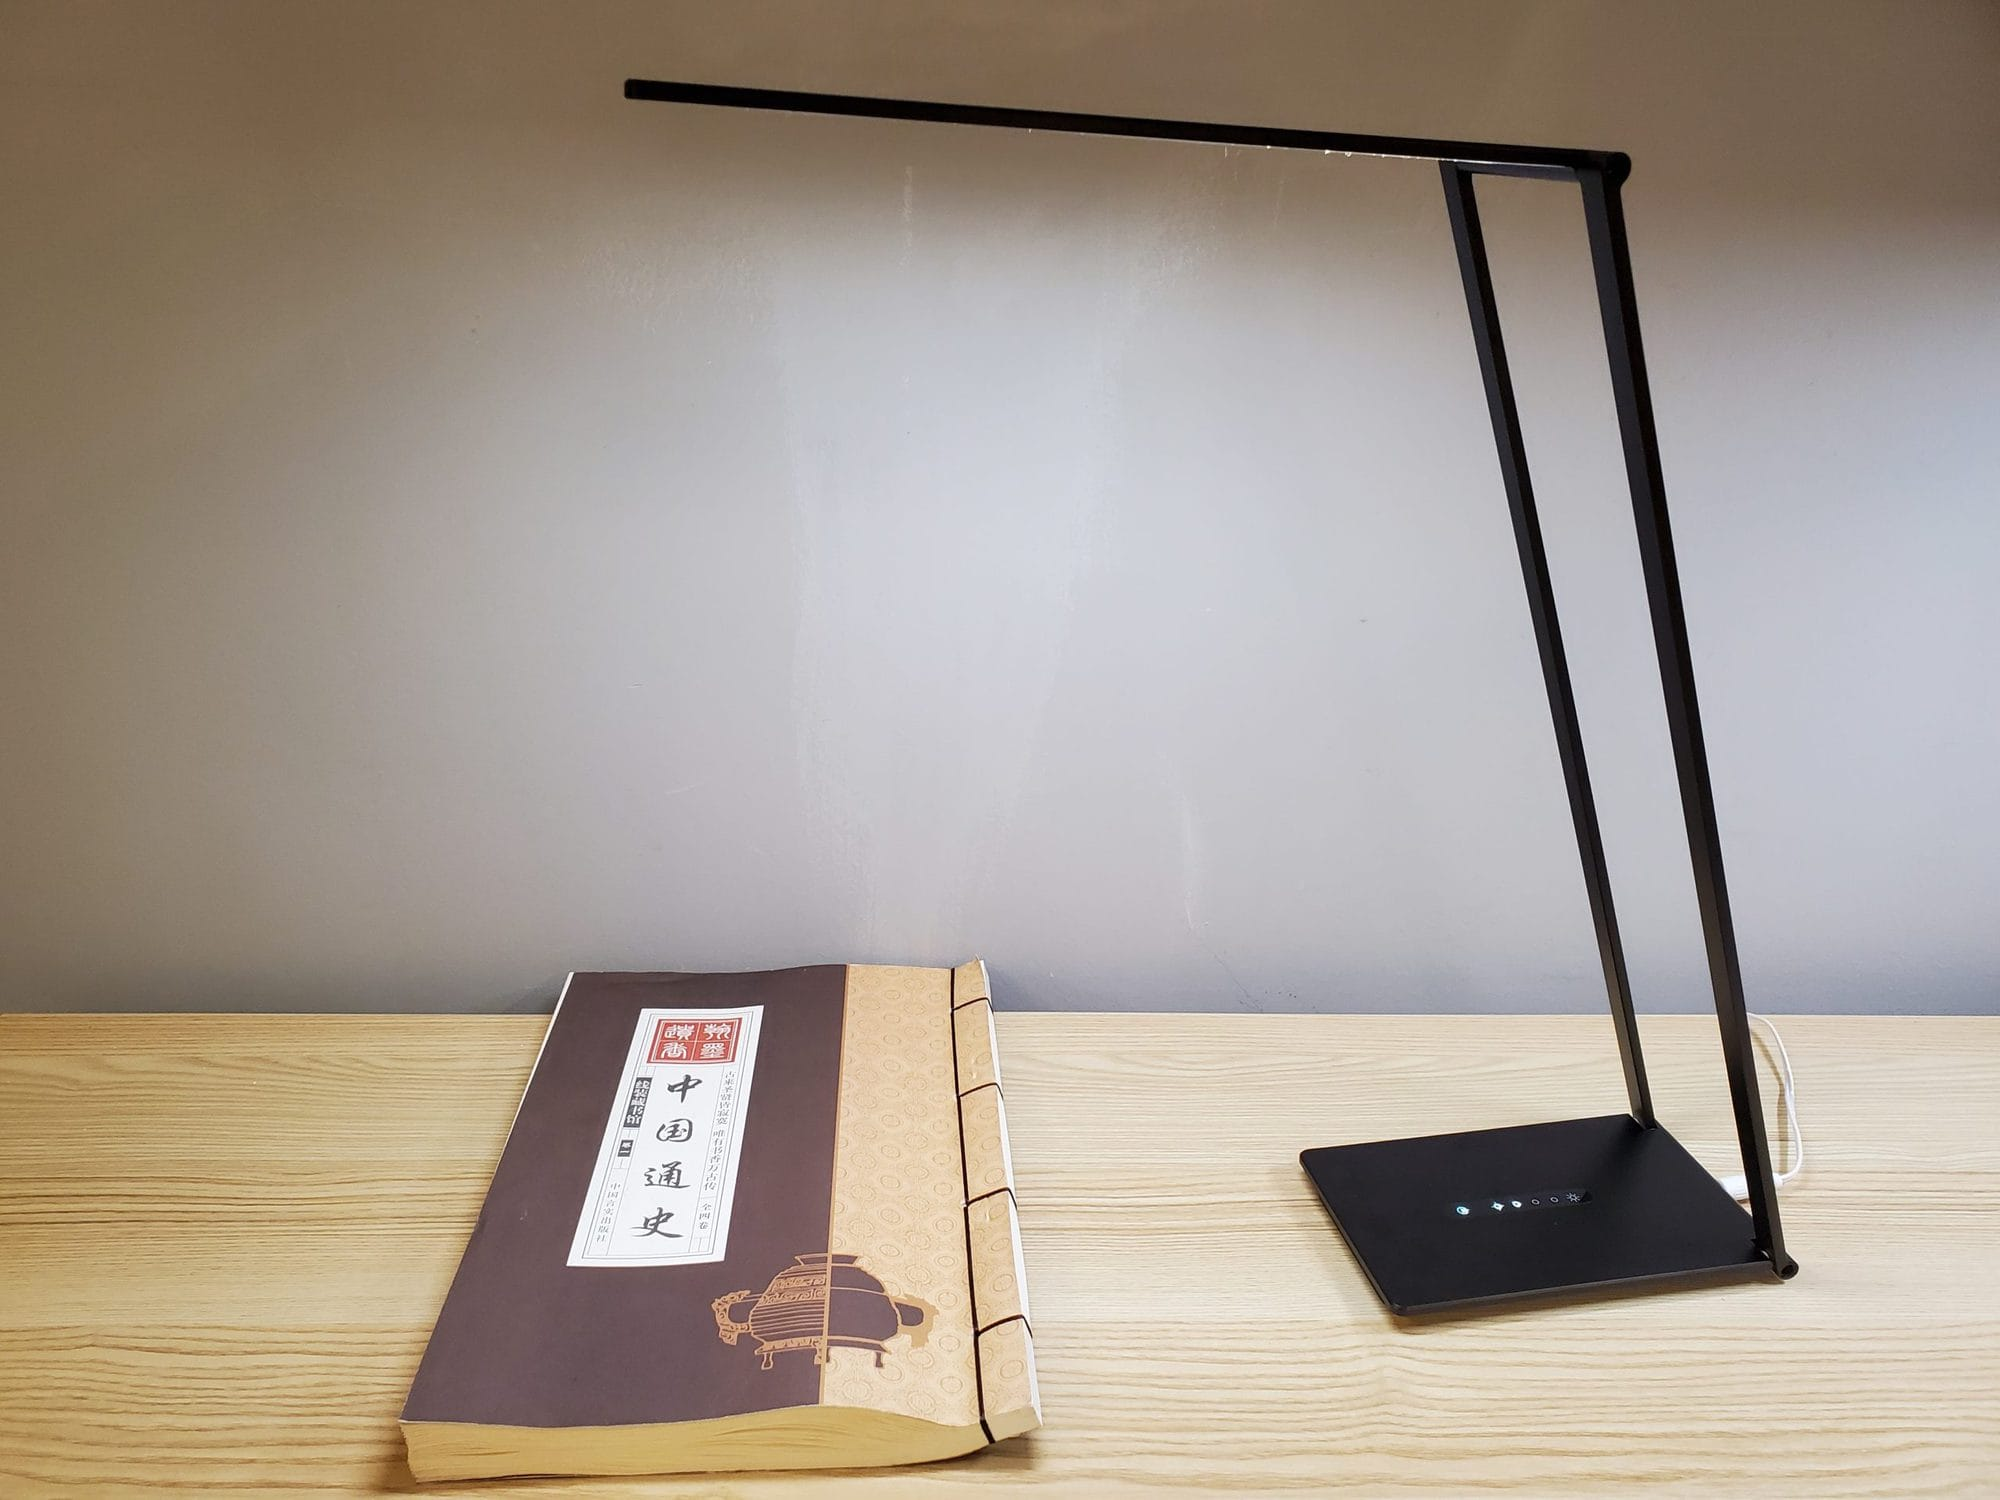 Jiangsu First-Light S1 Table Lamp